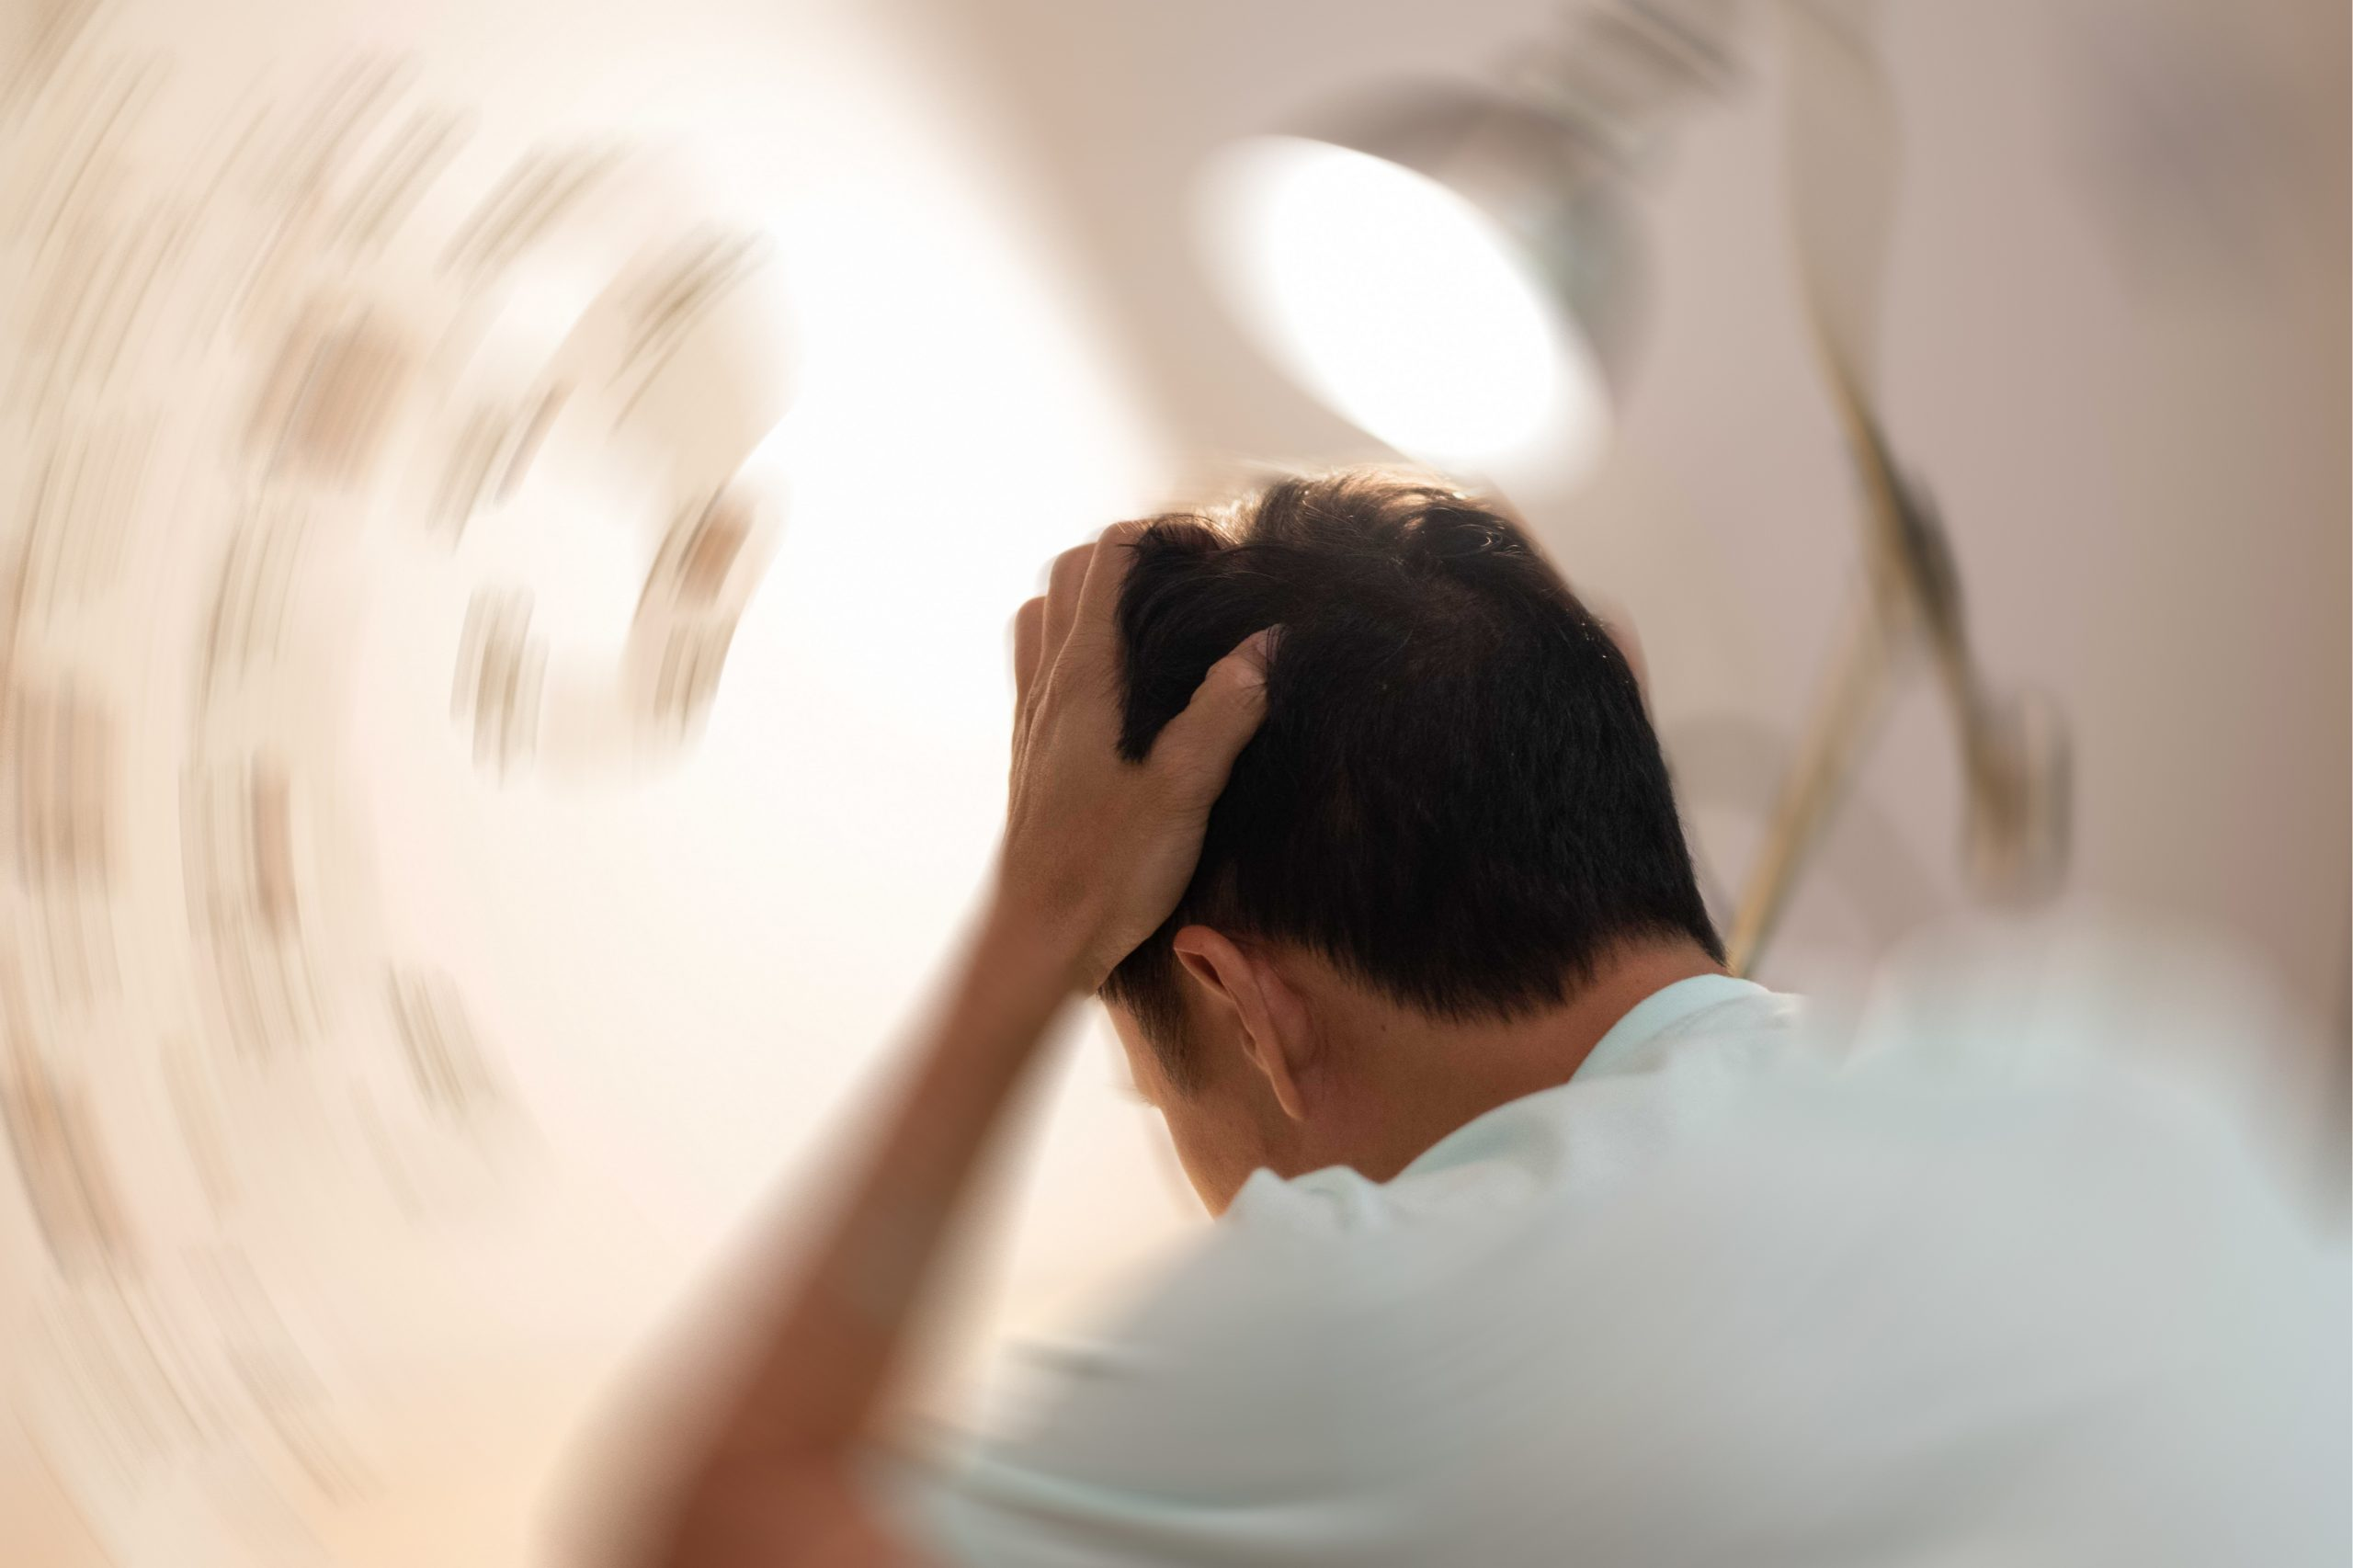 Why Do I Have a Headache on the Left Side of My Head?